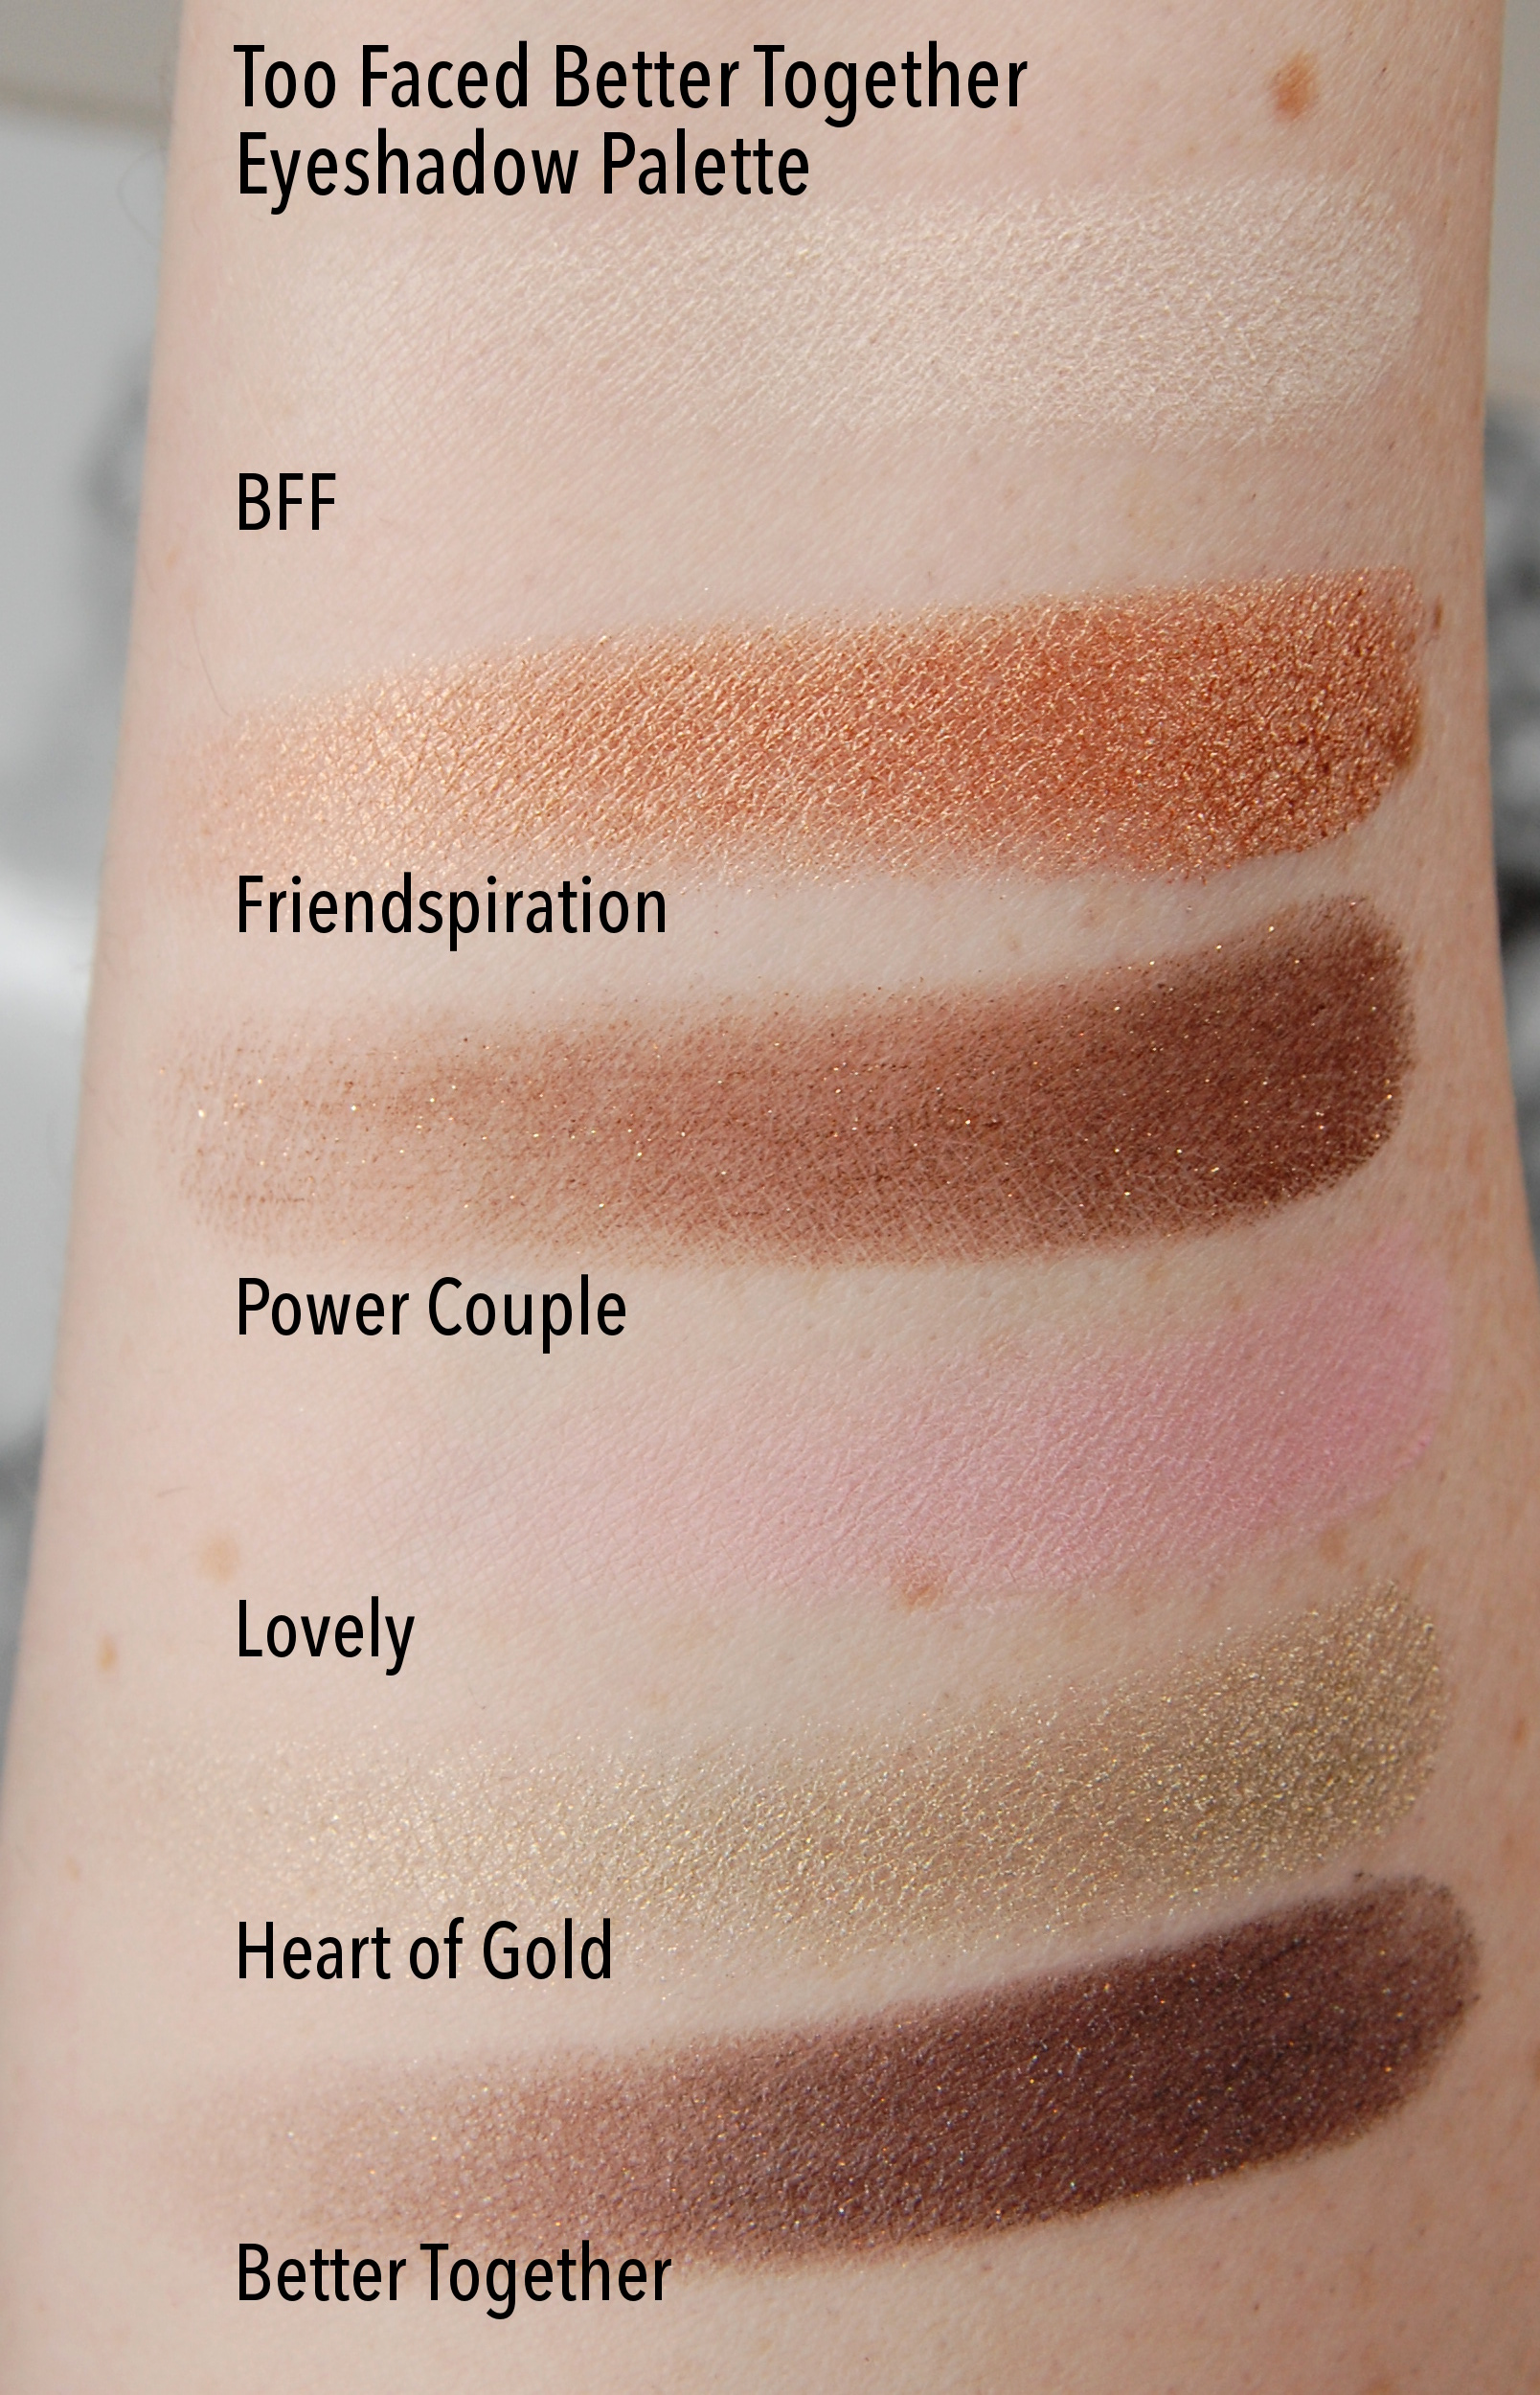 Too Faced Kat Von D Better Together Ultimate Eye Collection swatches 1